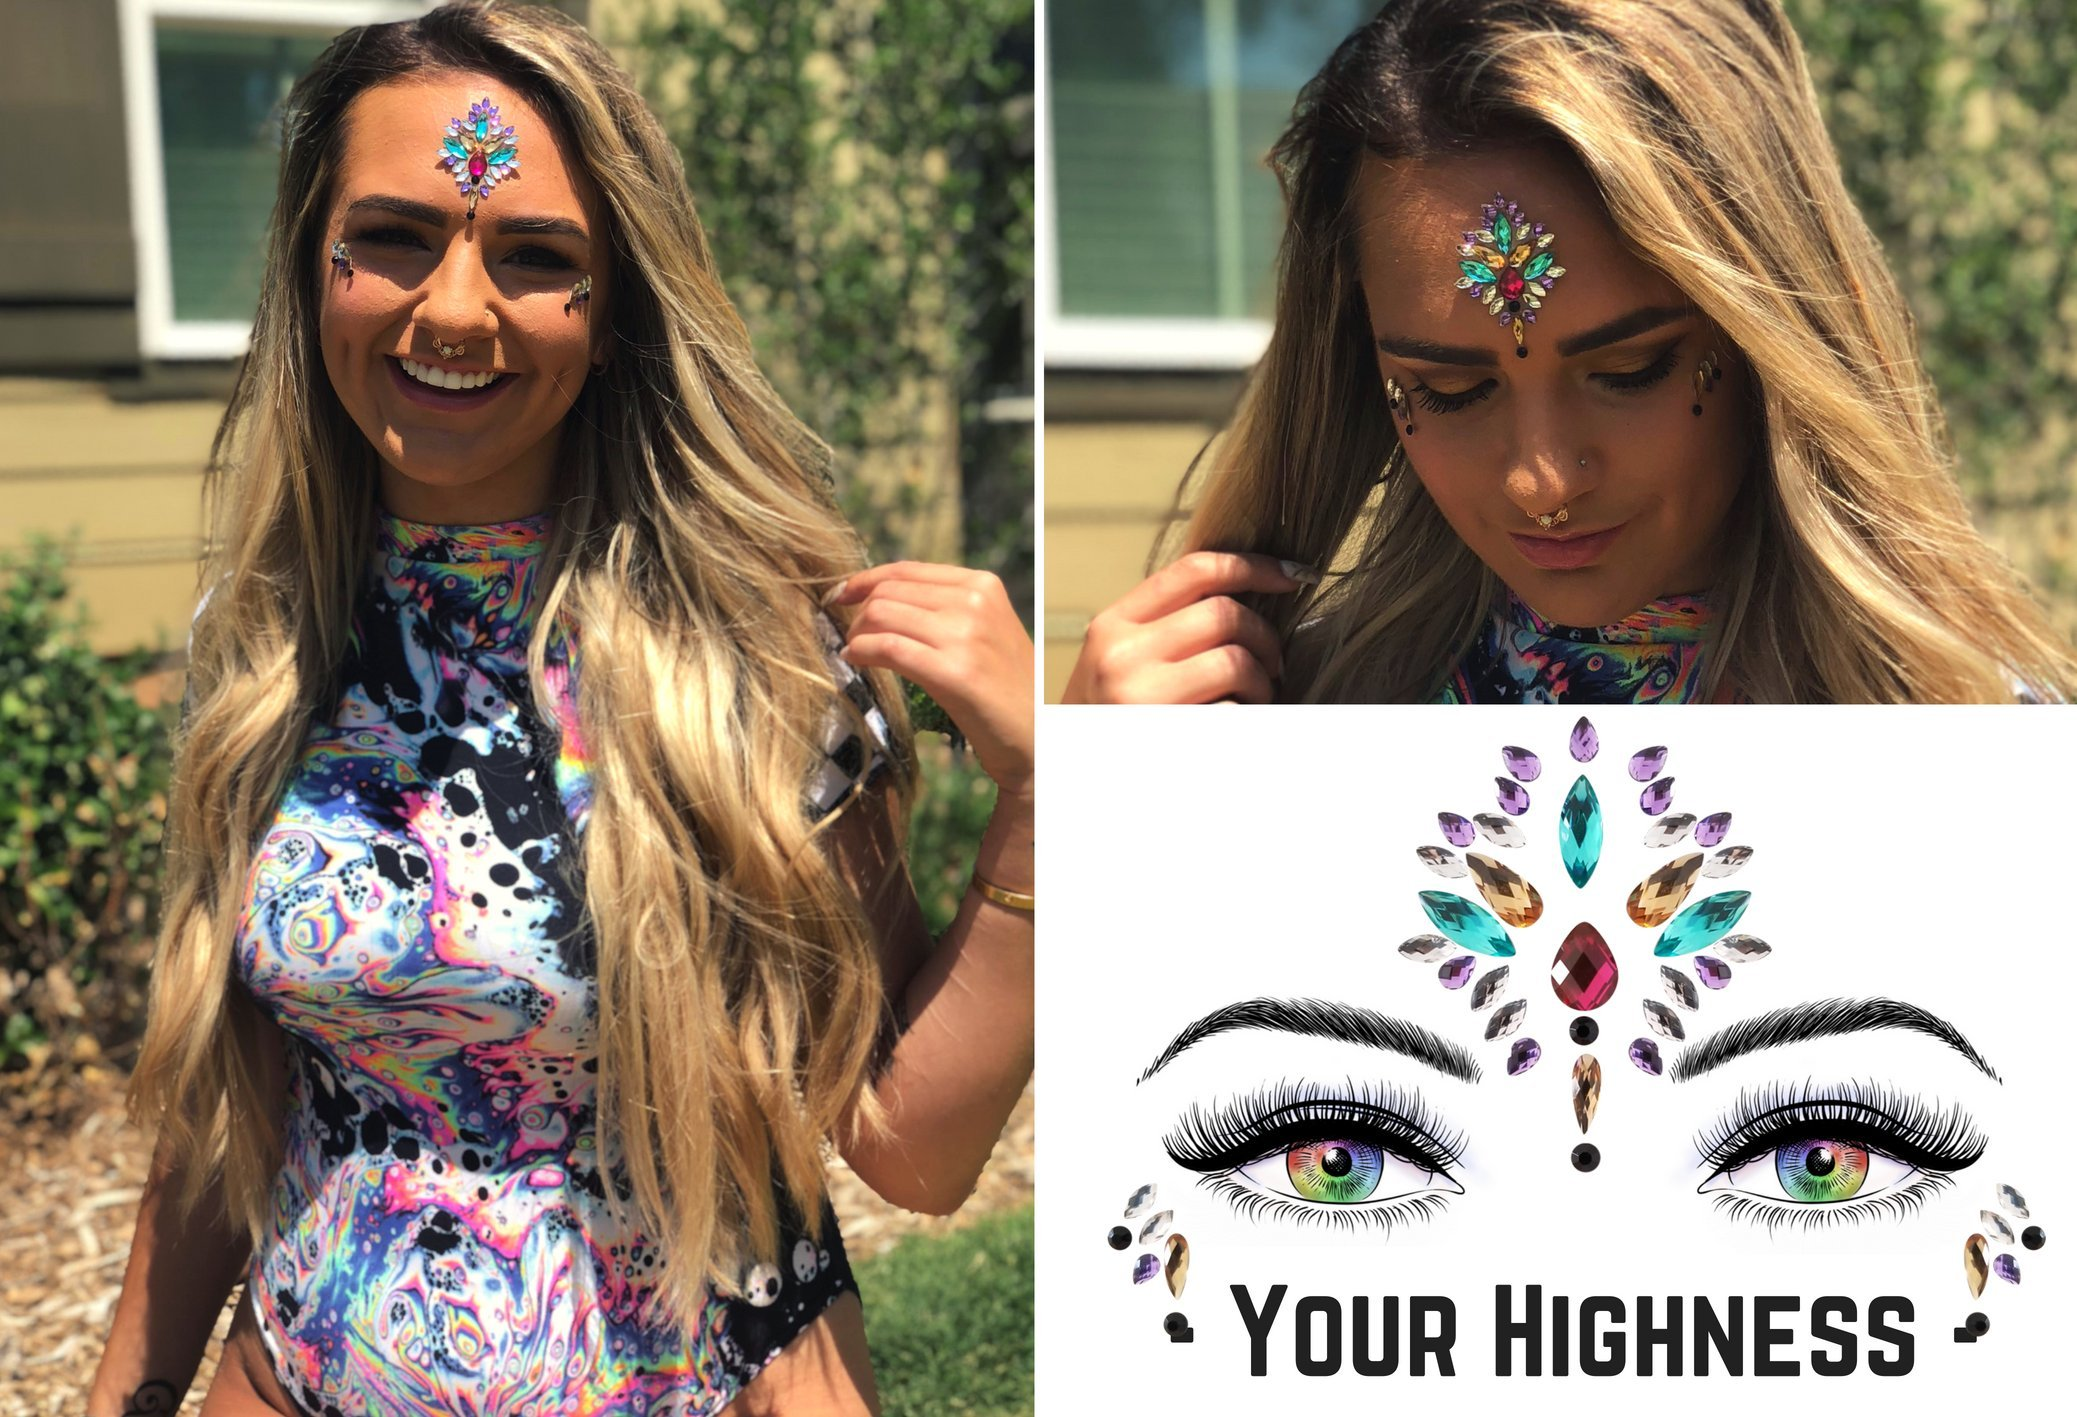 6 Stick On Face Jewels Sets, Gems, Glitter, Gem-Stones, Rhinestones Stickers, Temporary Tattoo - Self-Adhesive, Bindi, Indian, Mermaid Crystals. Accessories For Body, Women, Festivals, Rave, or Party by Luxxe Hour (Image #2)